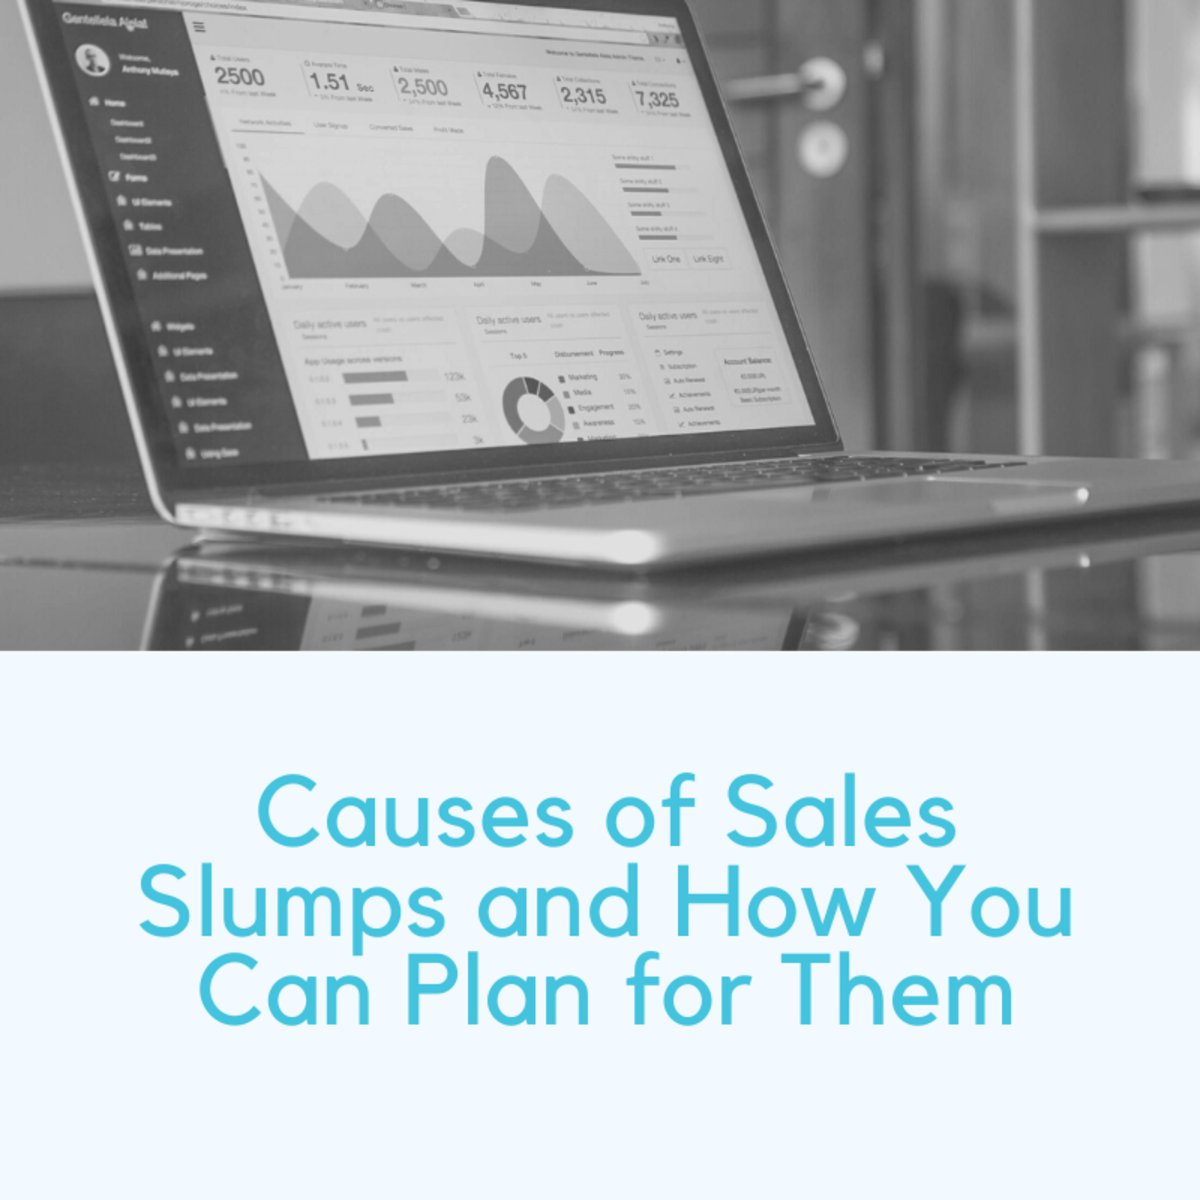 How to Plan for Sales Slumps